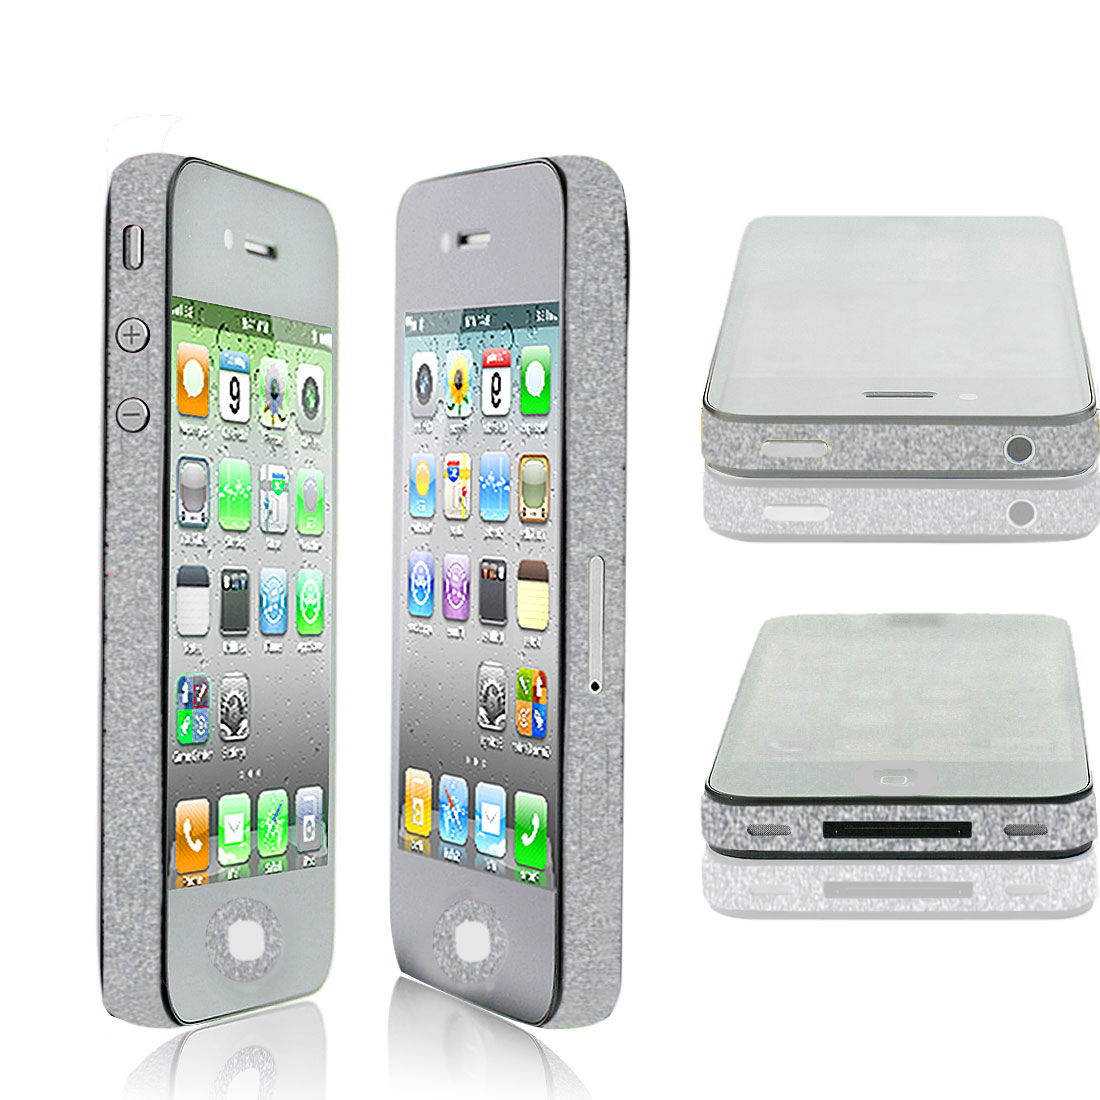 Self Adhesive Silver Tone Frame Sticker Edge Wrap Decal for iPhone 4G 4S